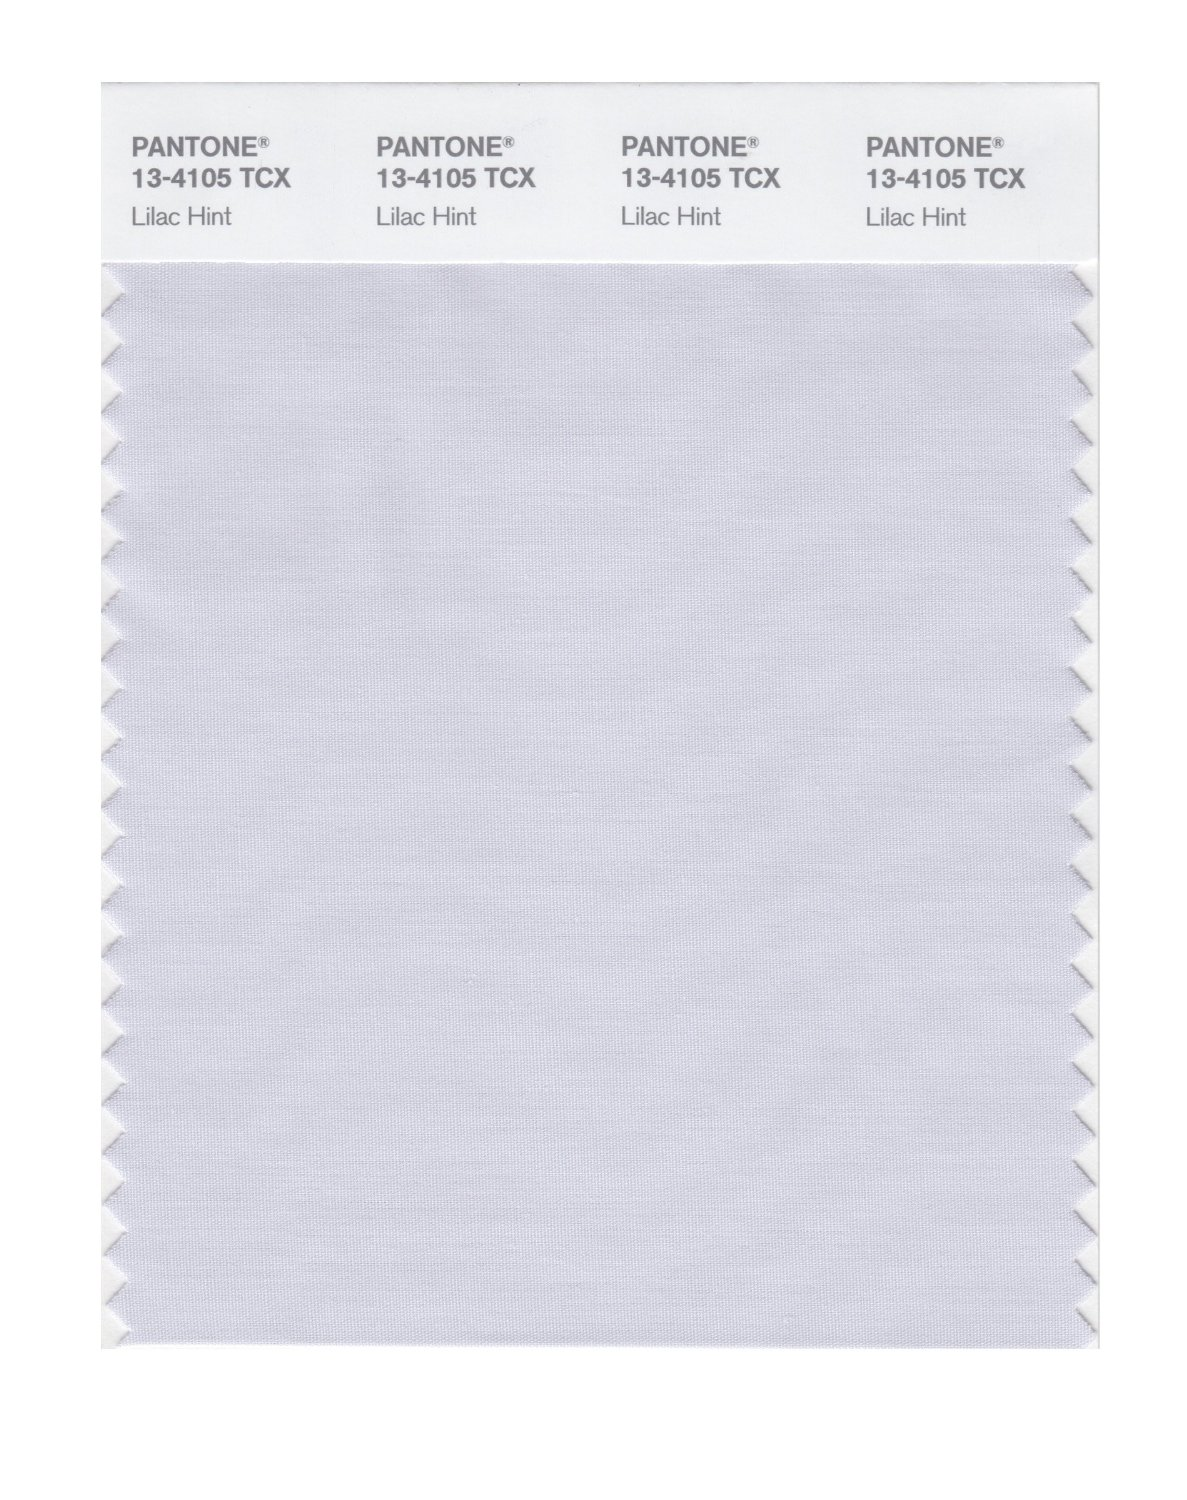 Pantone Smart Swatch 13-4105 Lilac Hint